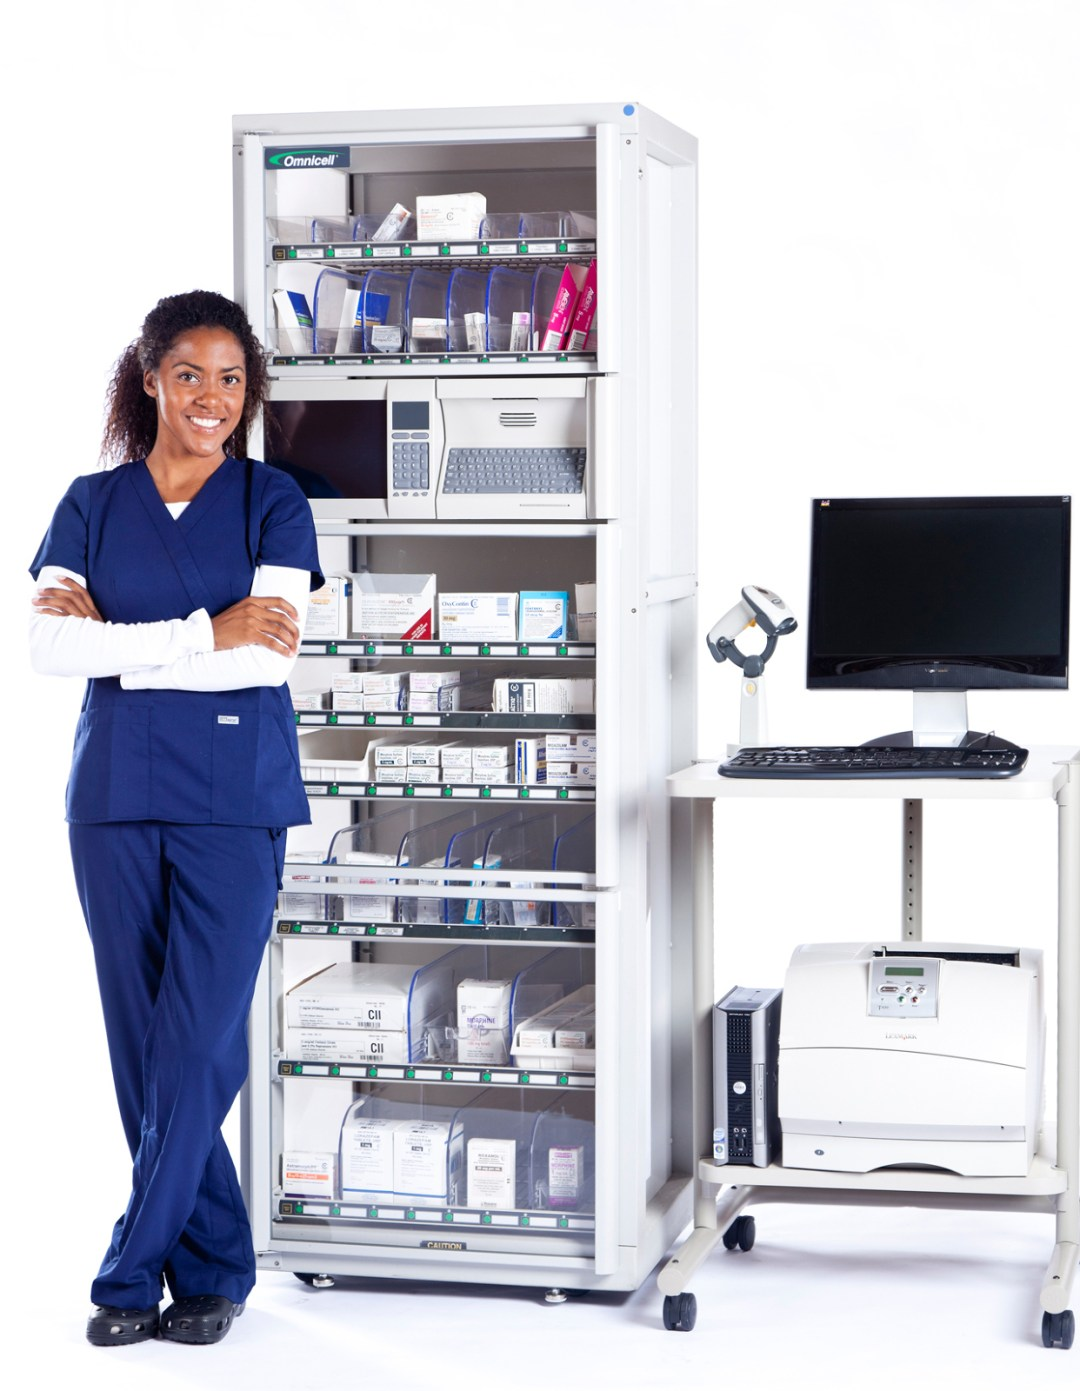 Product shot of medication dispenser with smiling nurse